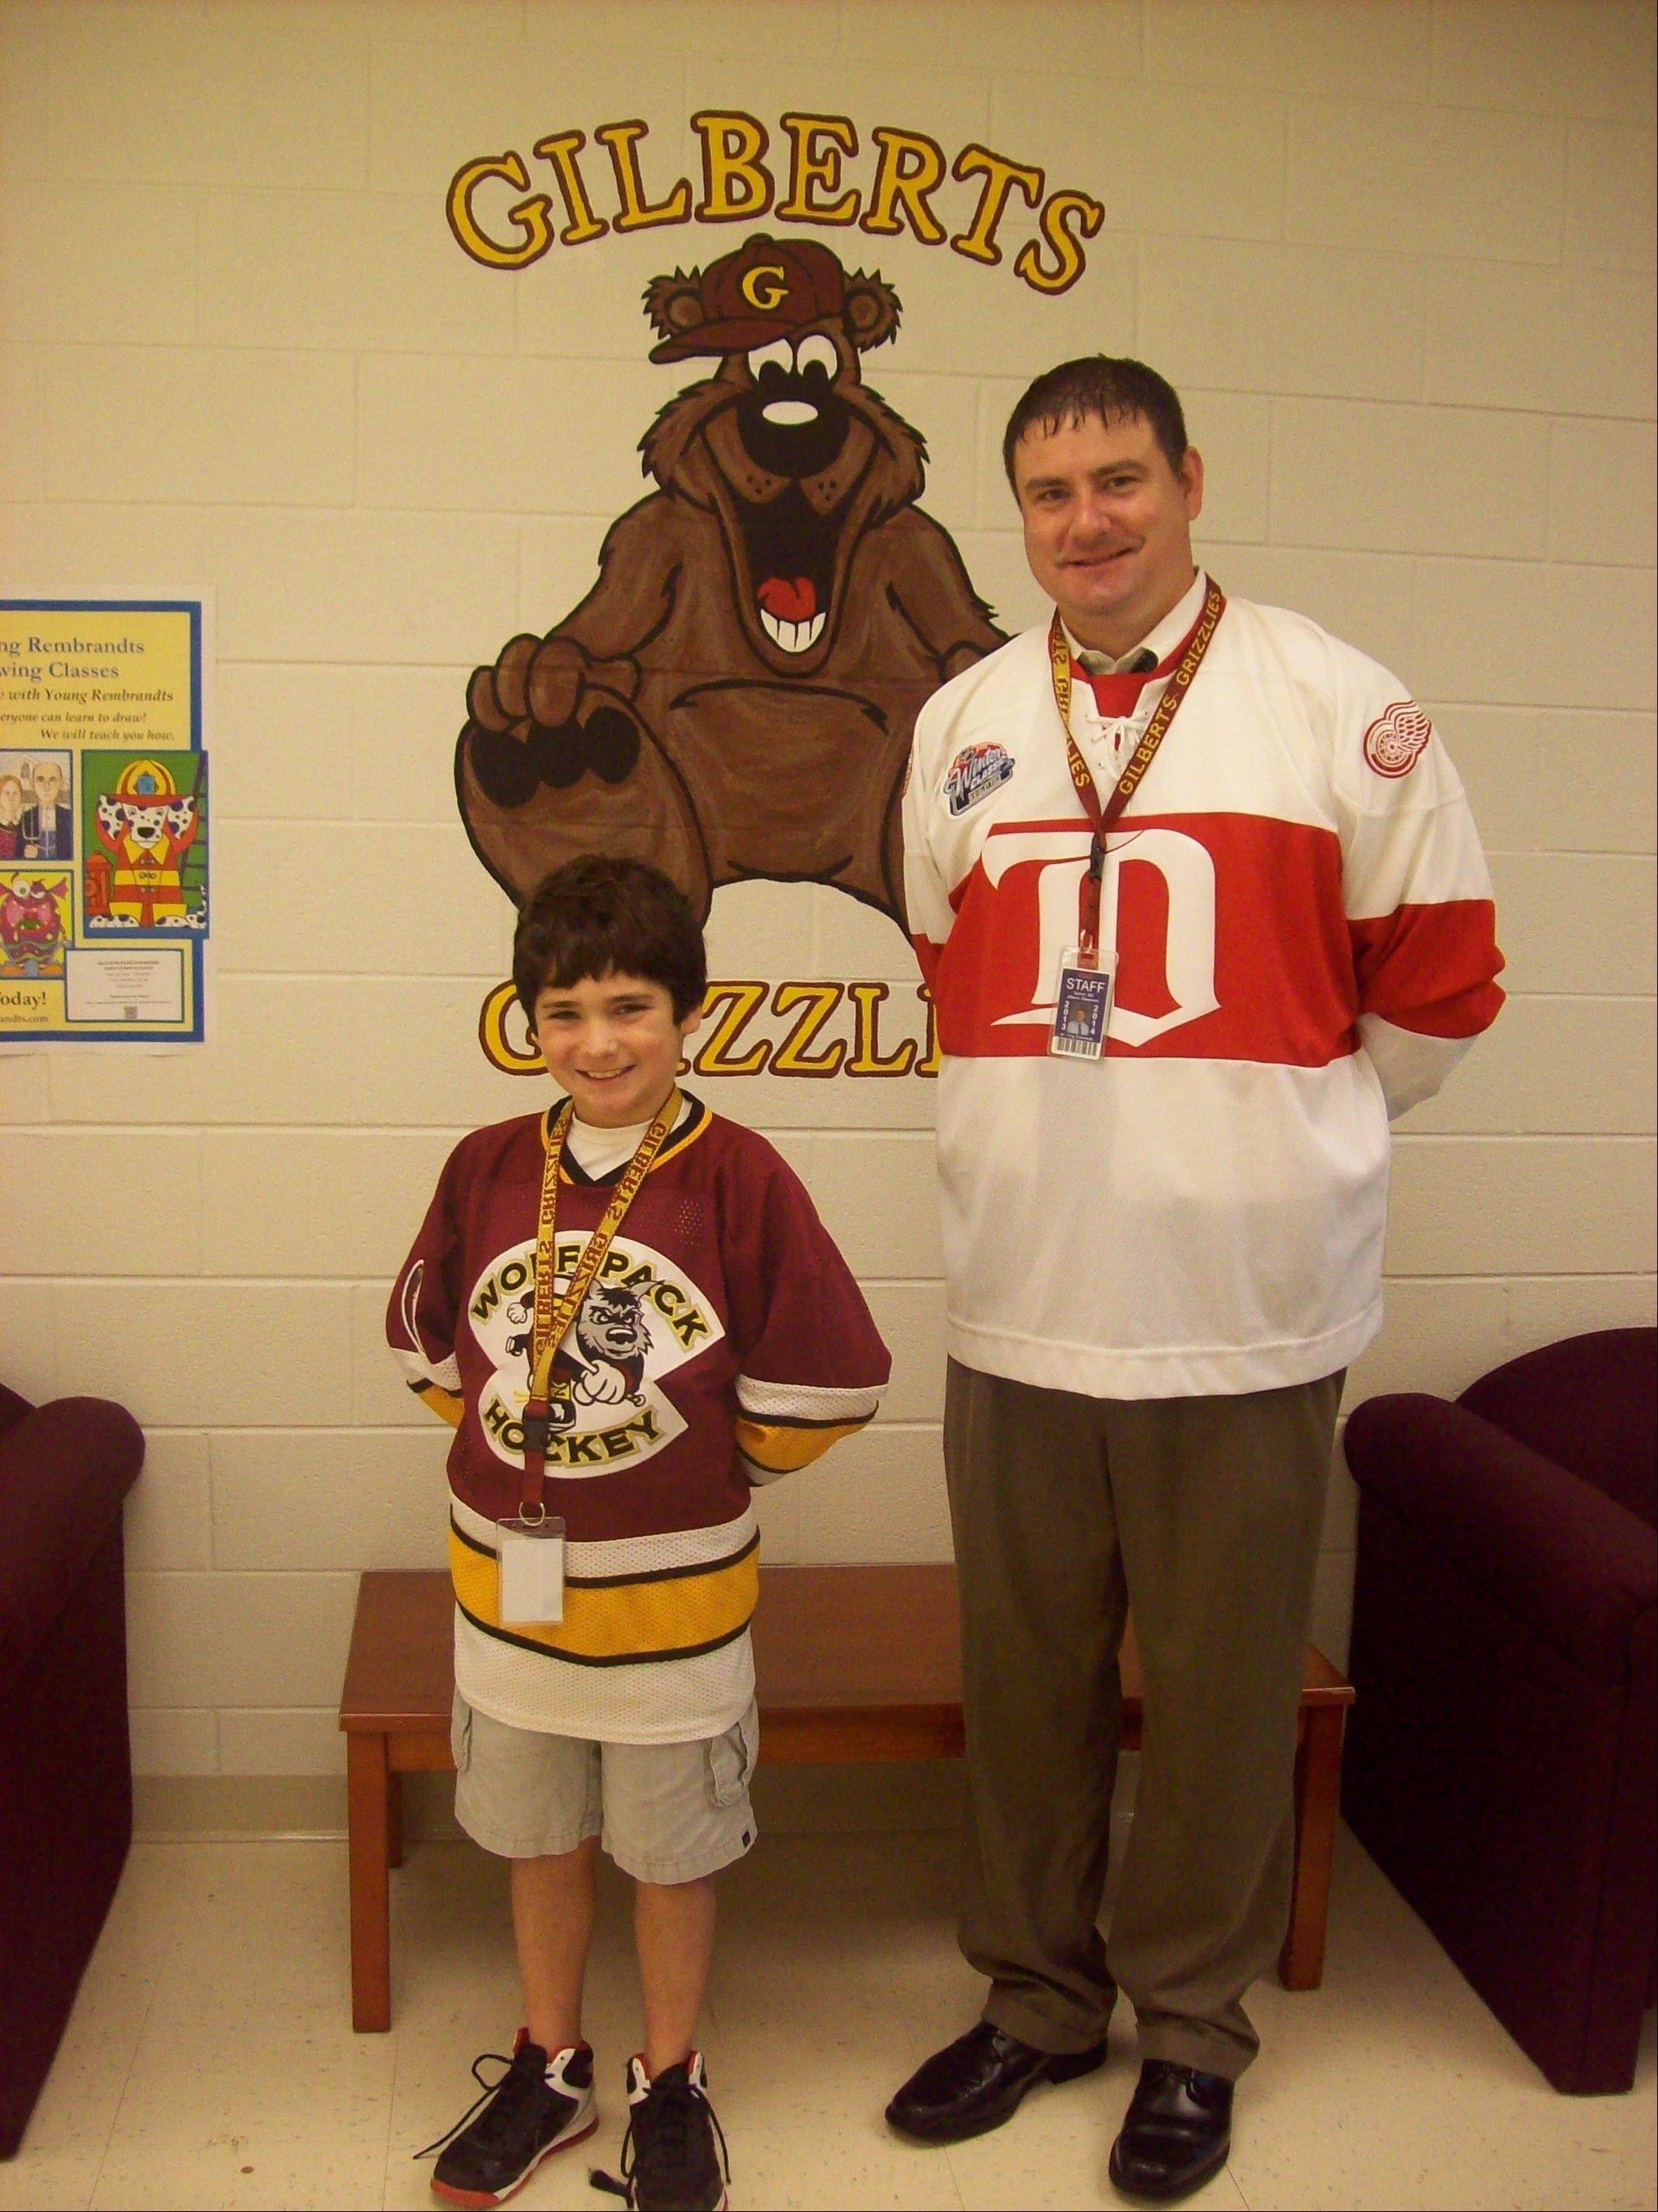 Blackhawks fan Vincenzo Pellegrino, left, a fifth-grader at Gilberts Elementary School, won a bet with Principal Craig Zieleniewski, a Red Wings fan, as to who would win the Stanley Cup. Pellegrino�s prize? To be principal for a day.